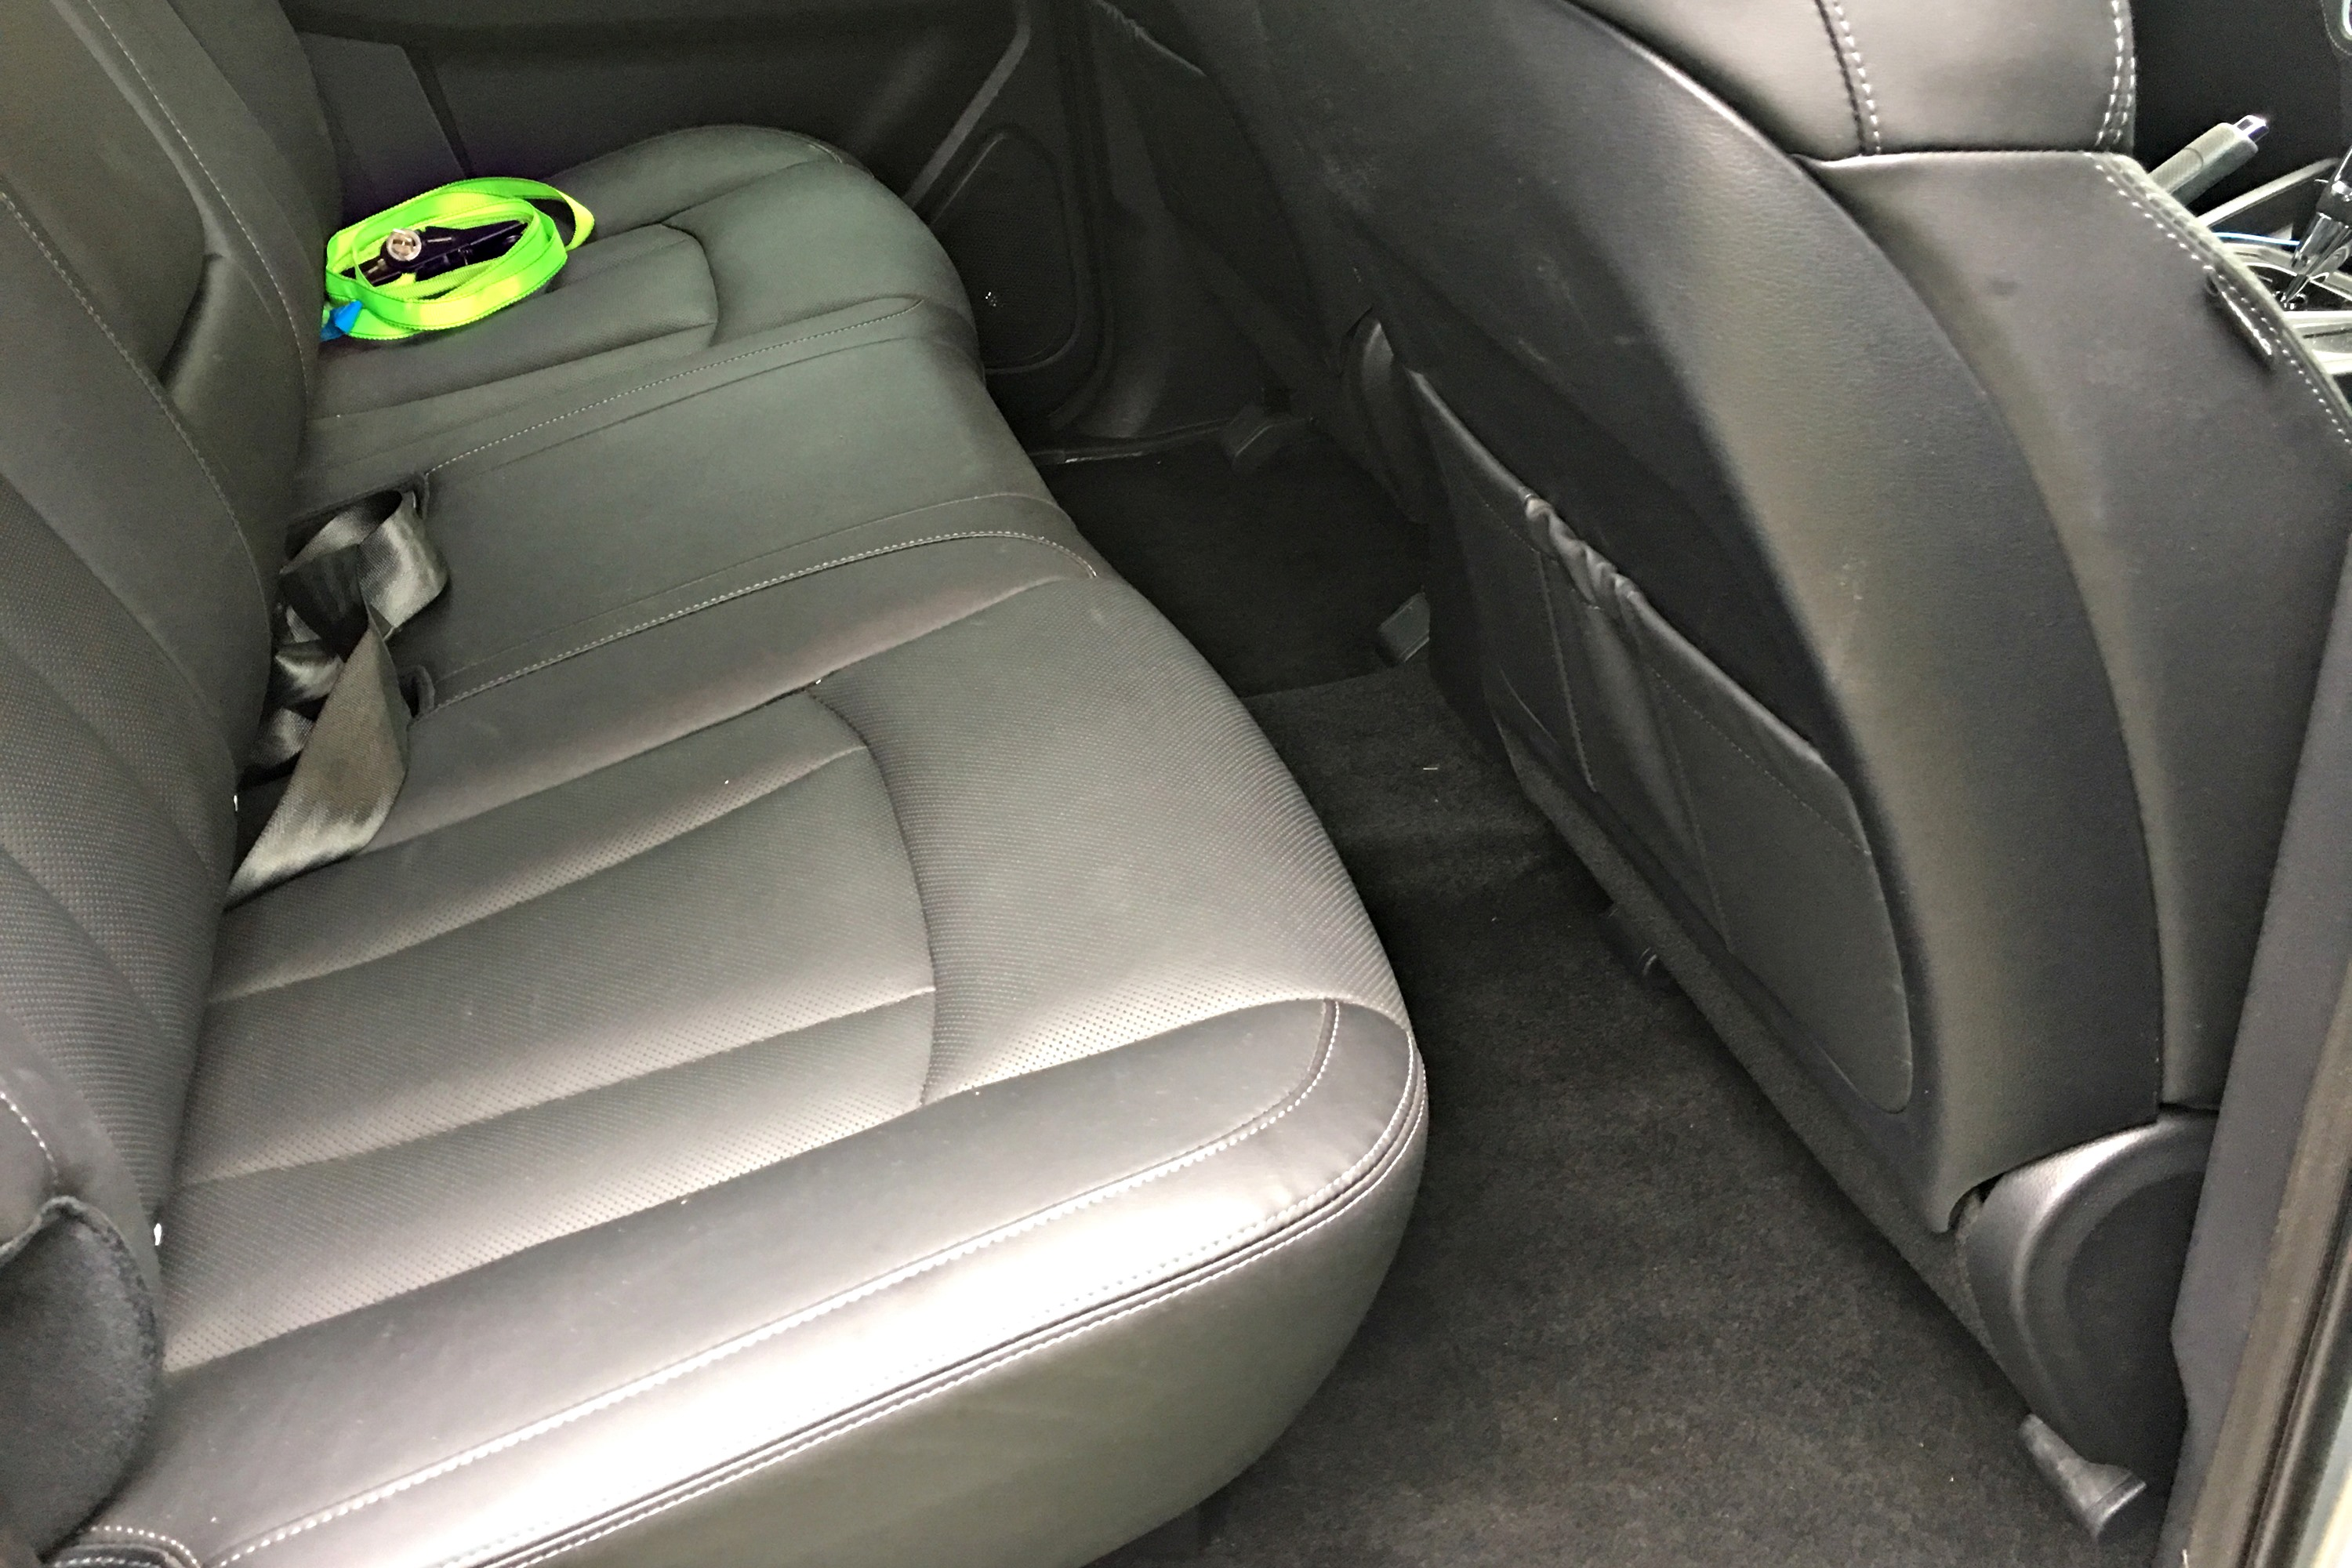 SsangYong Musso Ultimate 4 rear seats